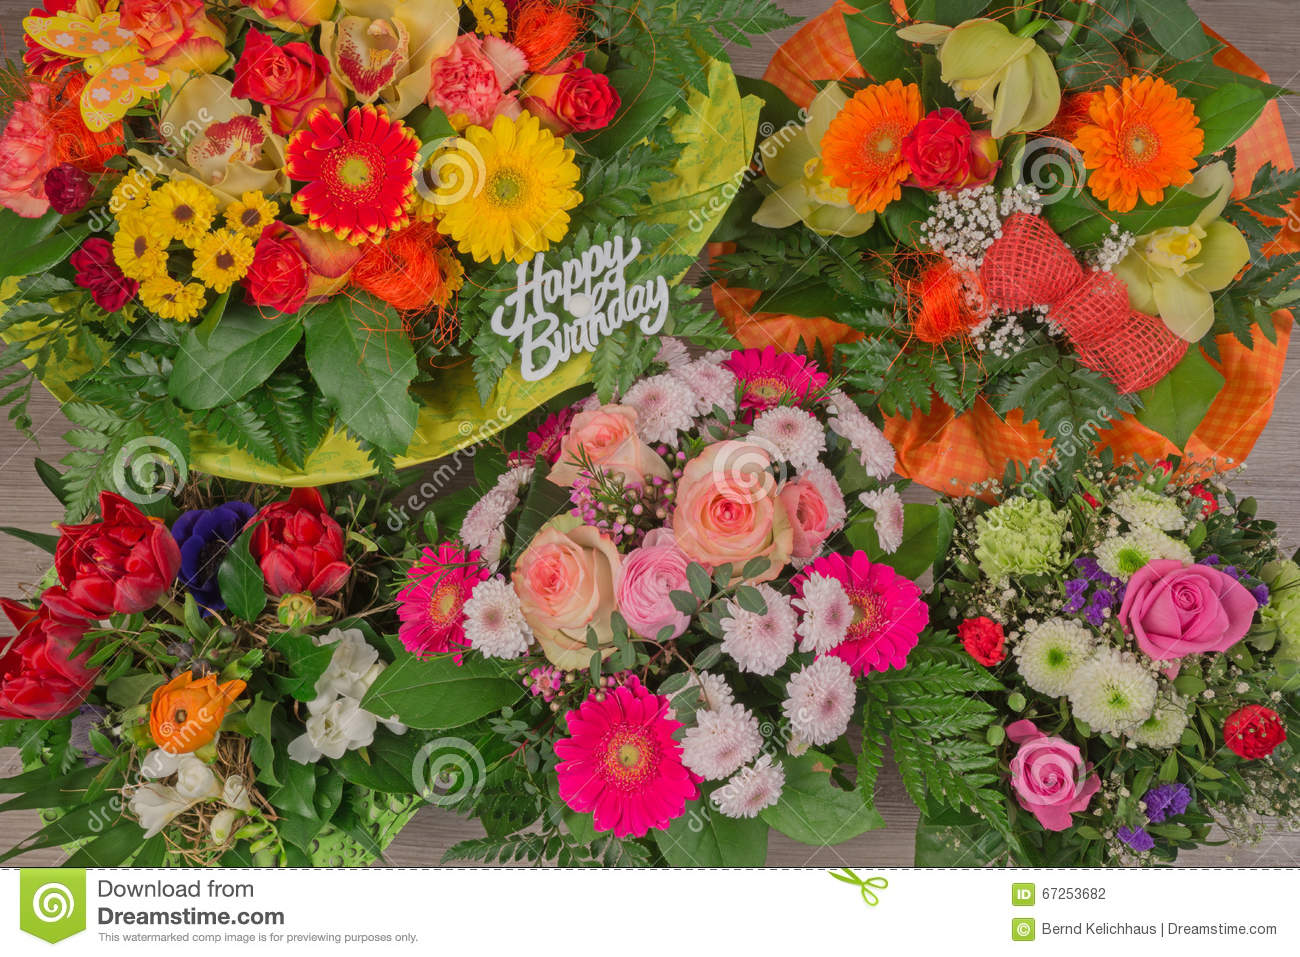 Flower bouquet with text happy birthday stock photo image of bunch of colorful flowers flower bouquet with text happy birthday izmirmasajfo